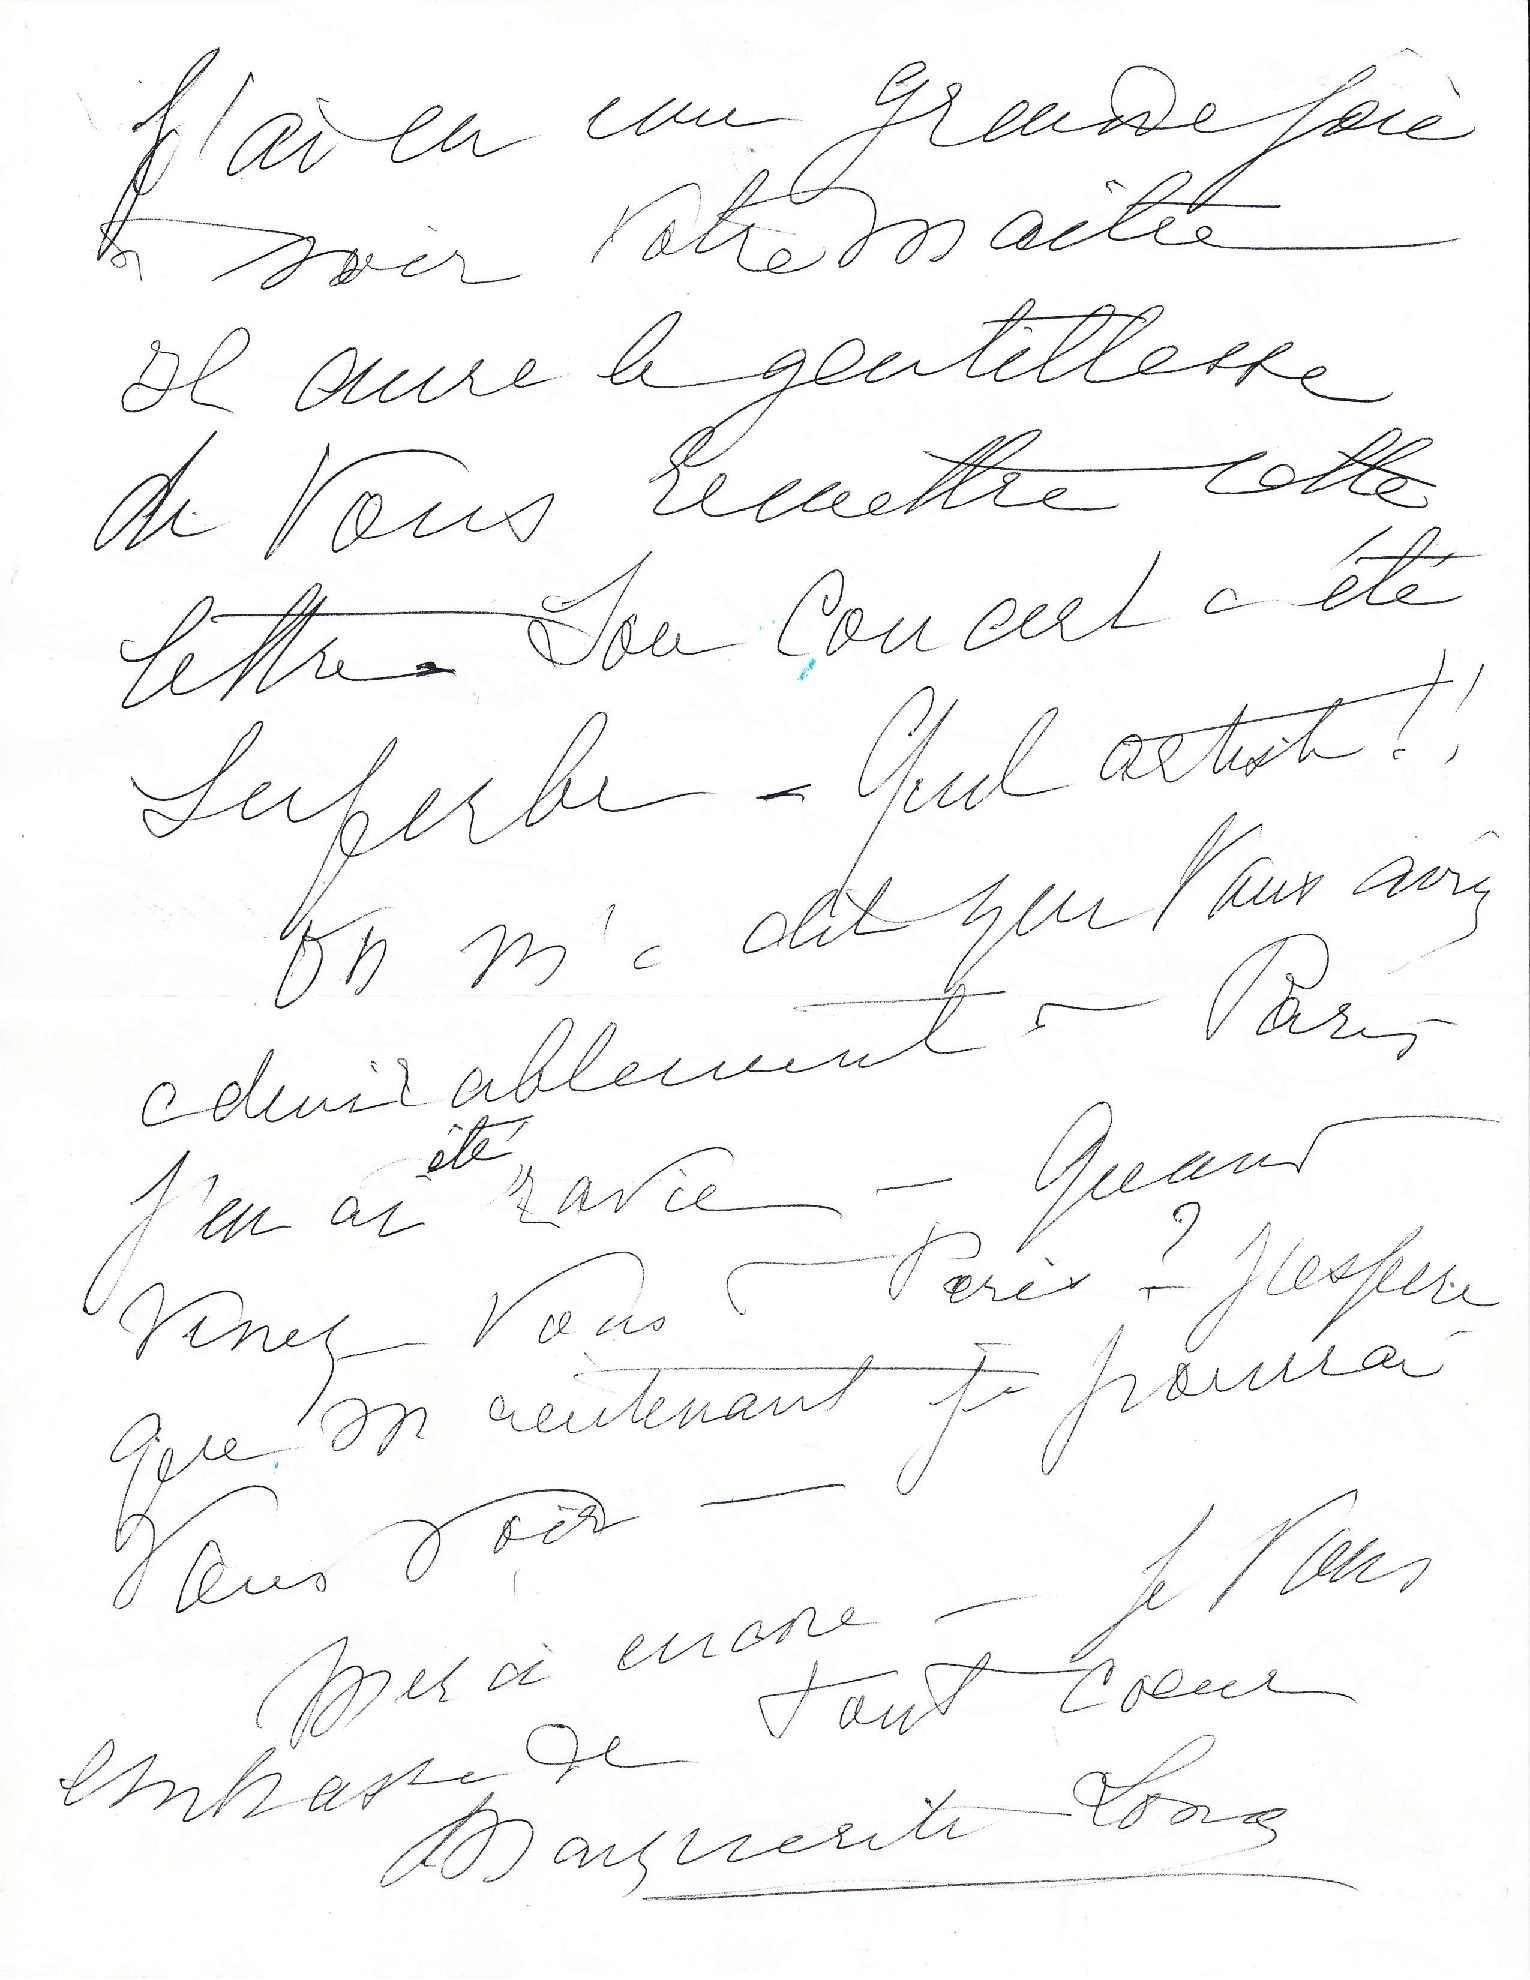 Letter from Marguerite Long to Mdivani (second page)